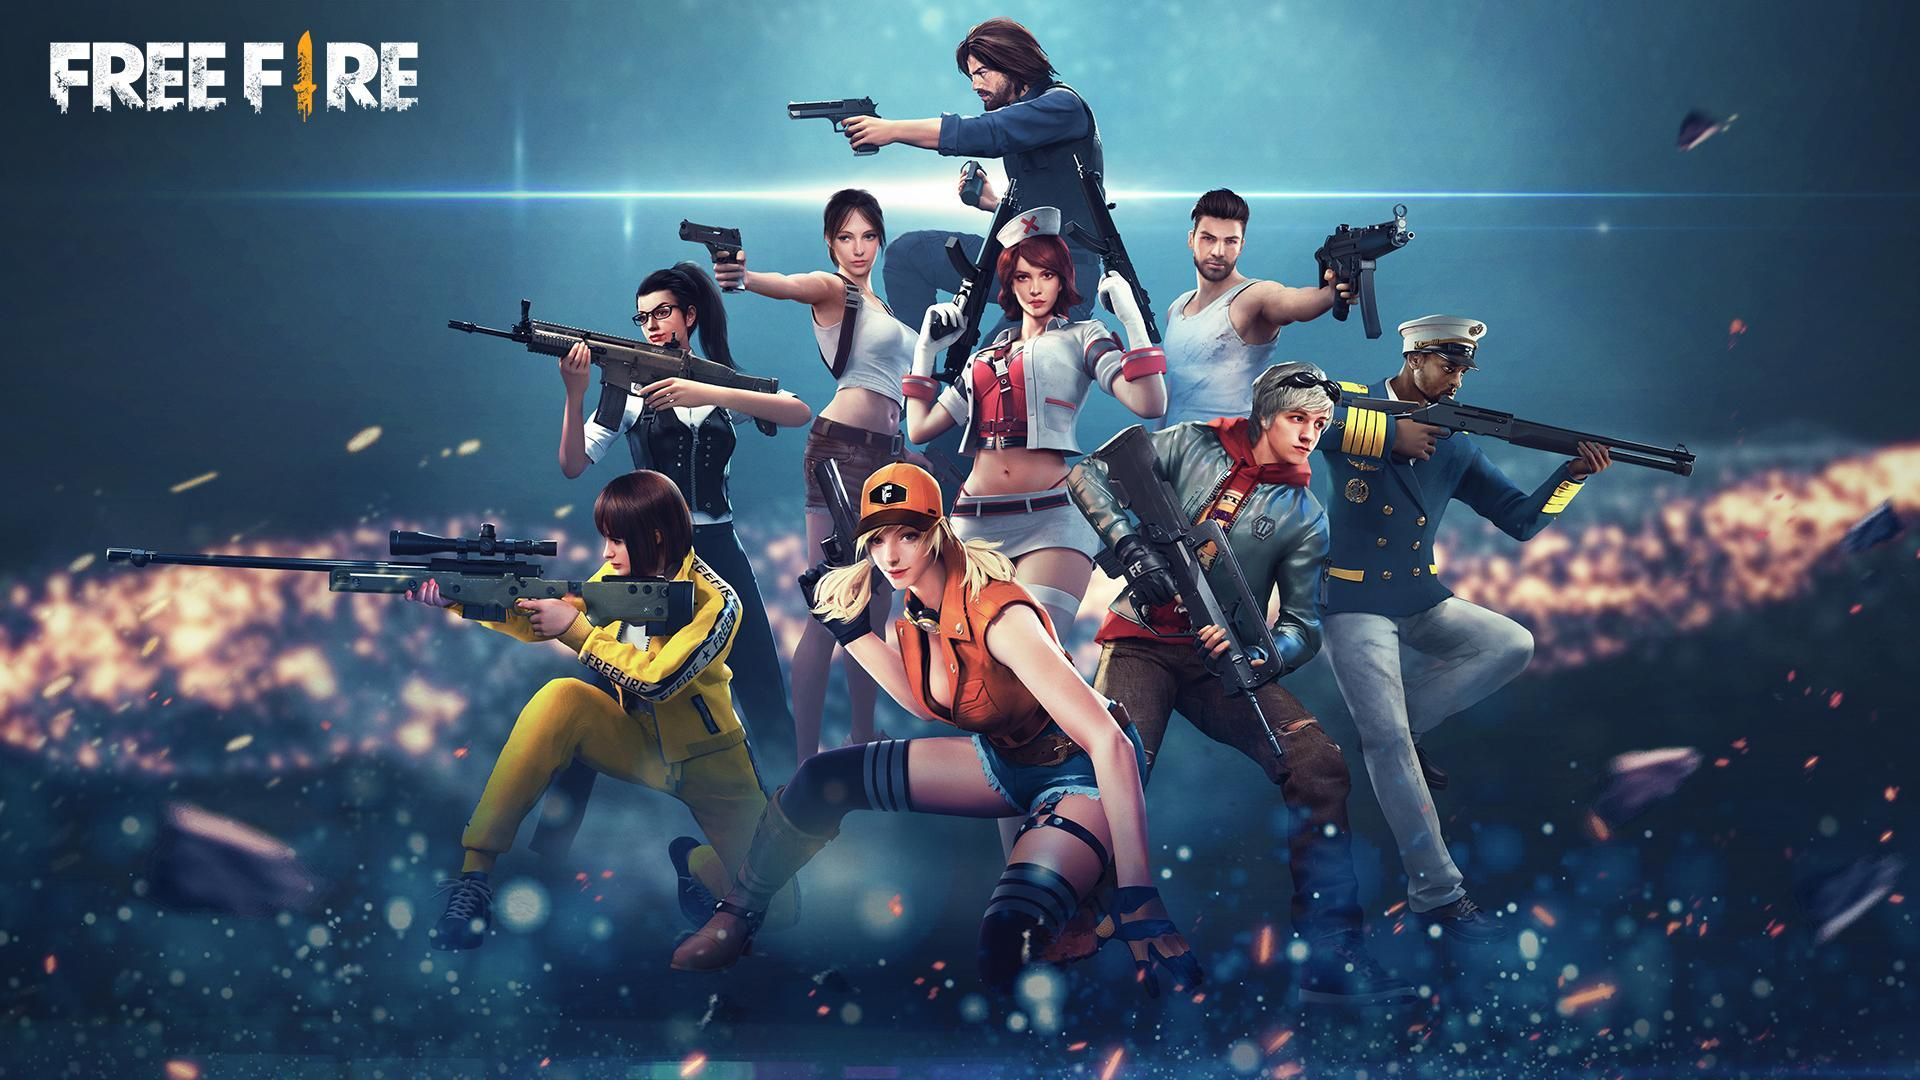 Free Fire HD Wallpaper for Android - APK Download